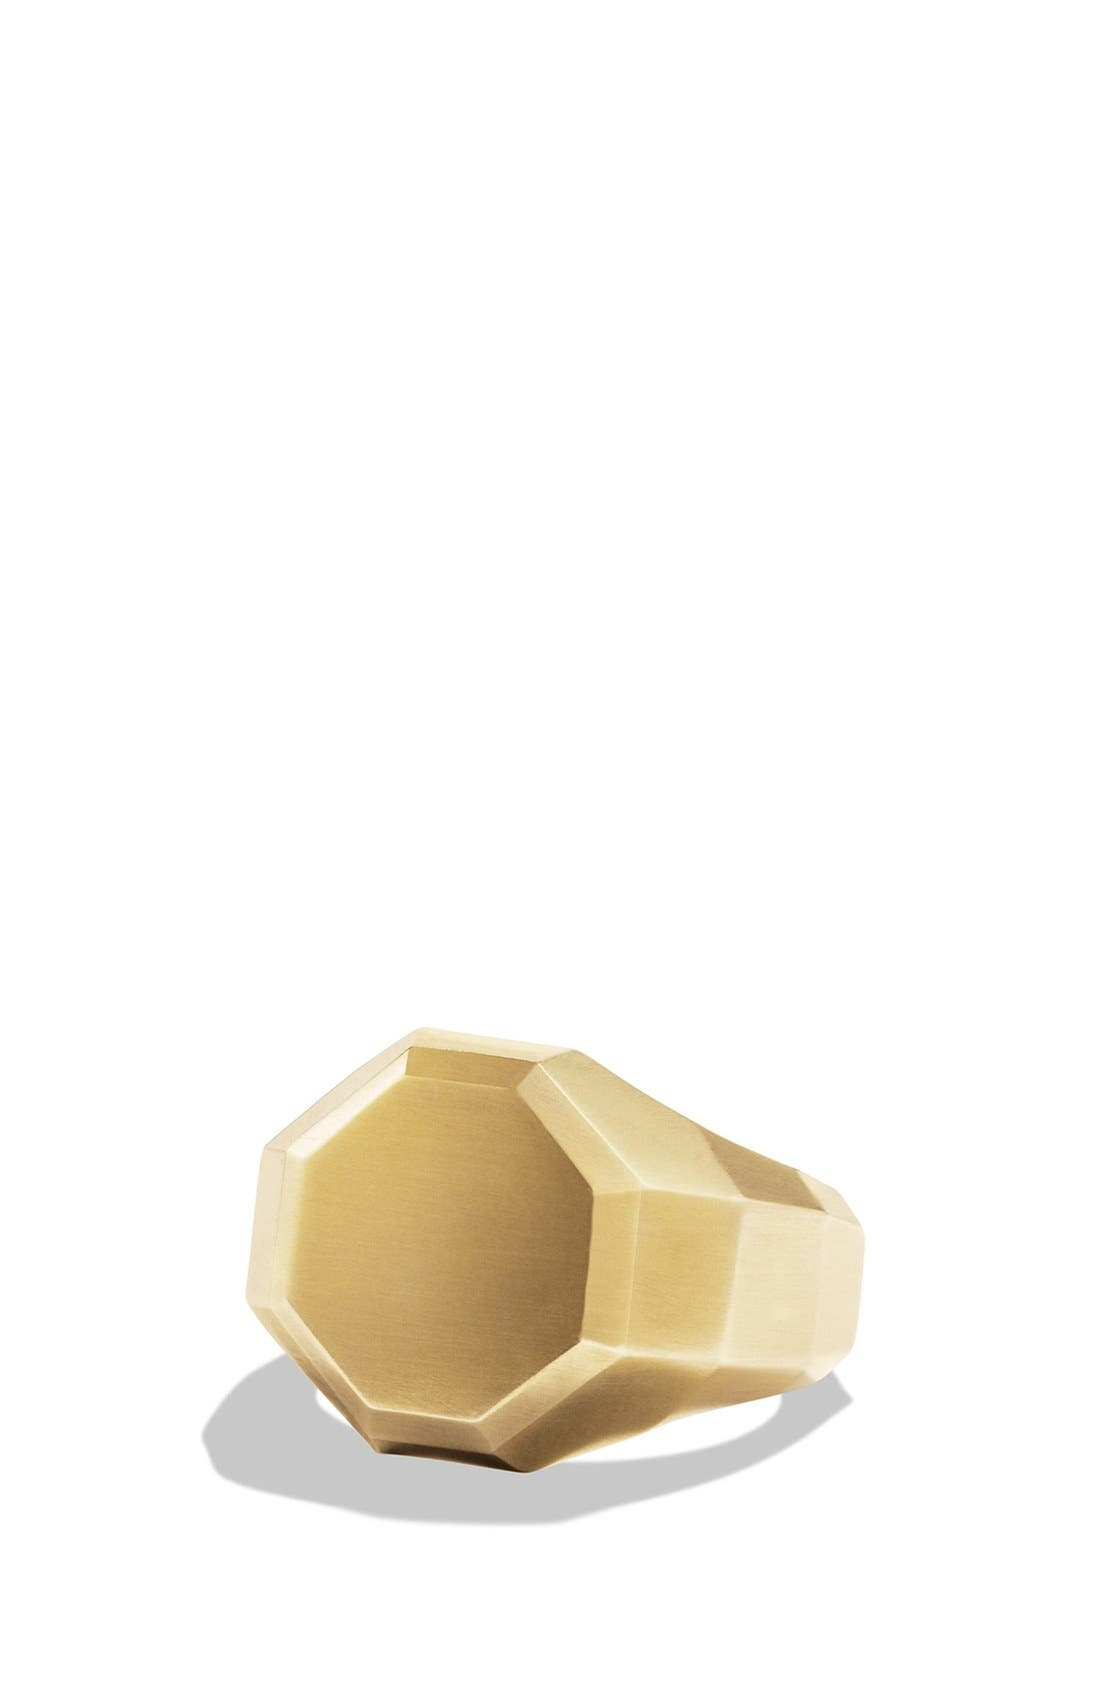 DAVID YURMAN Faceted Signet Ring with 18k Gold